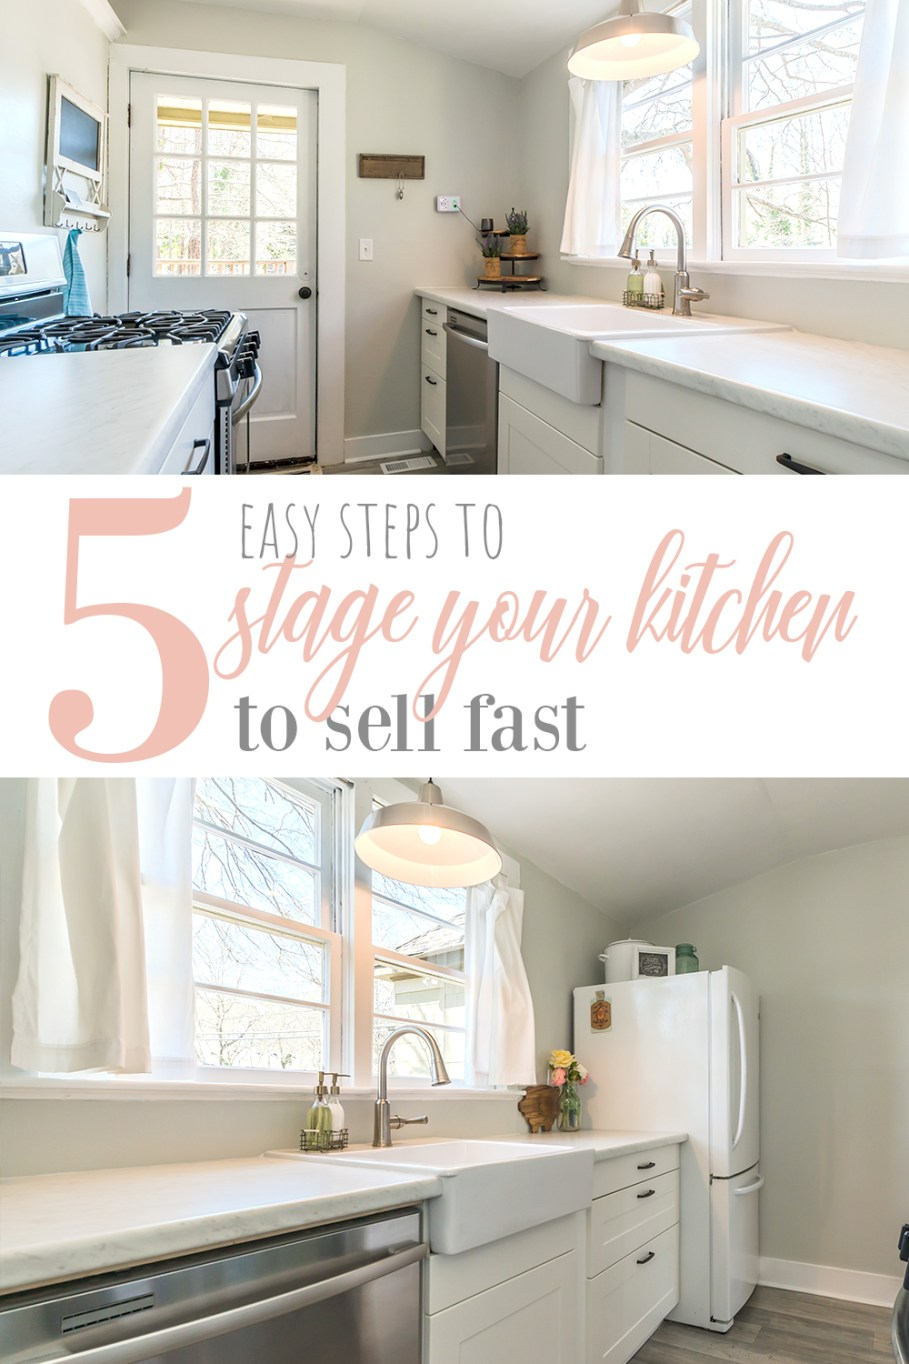 This post is full of some tips other home stagers won't tell you about how to stage your kitchen to sell your house fast. So, if you're selling your home and need to stage it yourself, you want to read this post about home staging a kitchen the easy way.